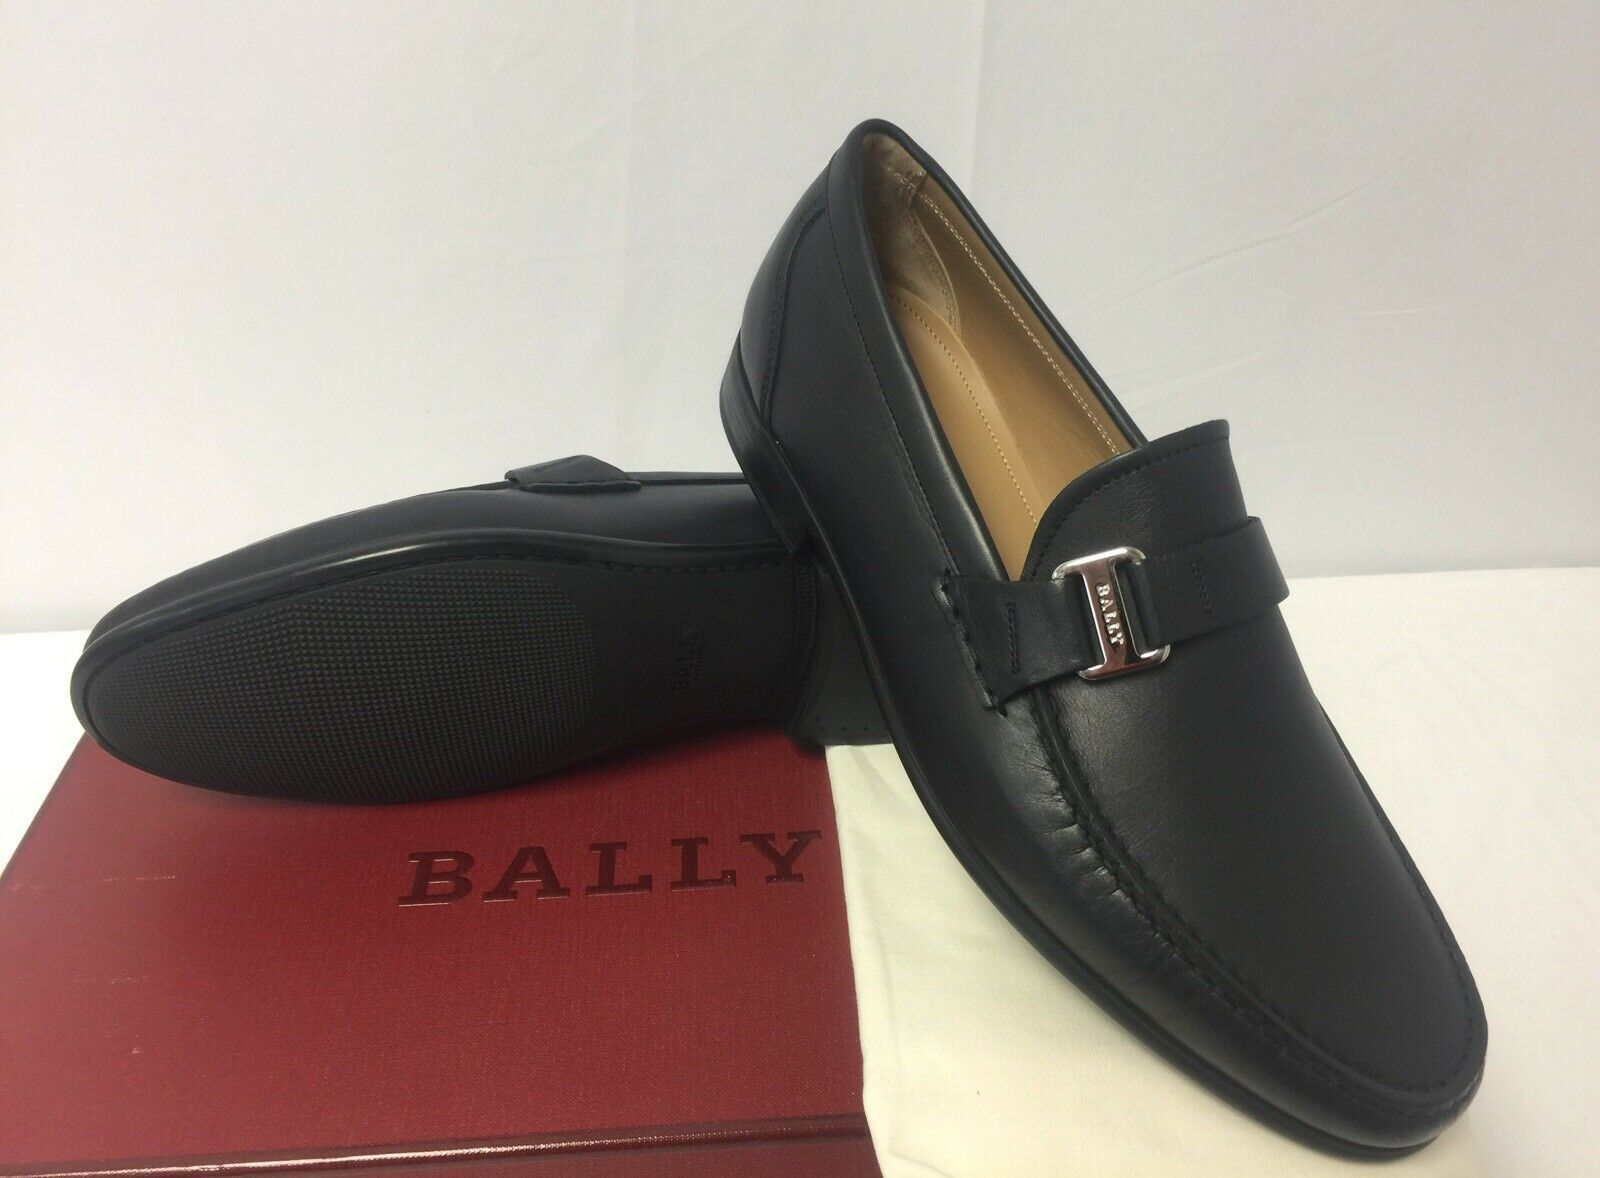 New In Box Bally 'Colbar' Navy Textured Leather Logo Loafers Sz. 8.5 9.5